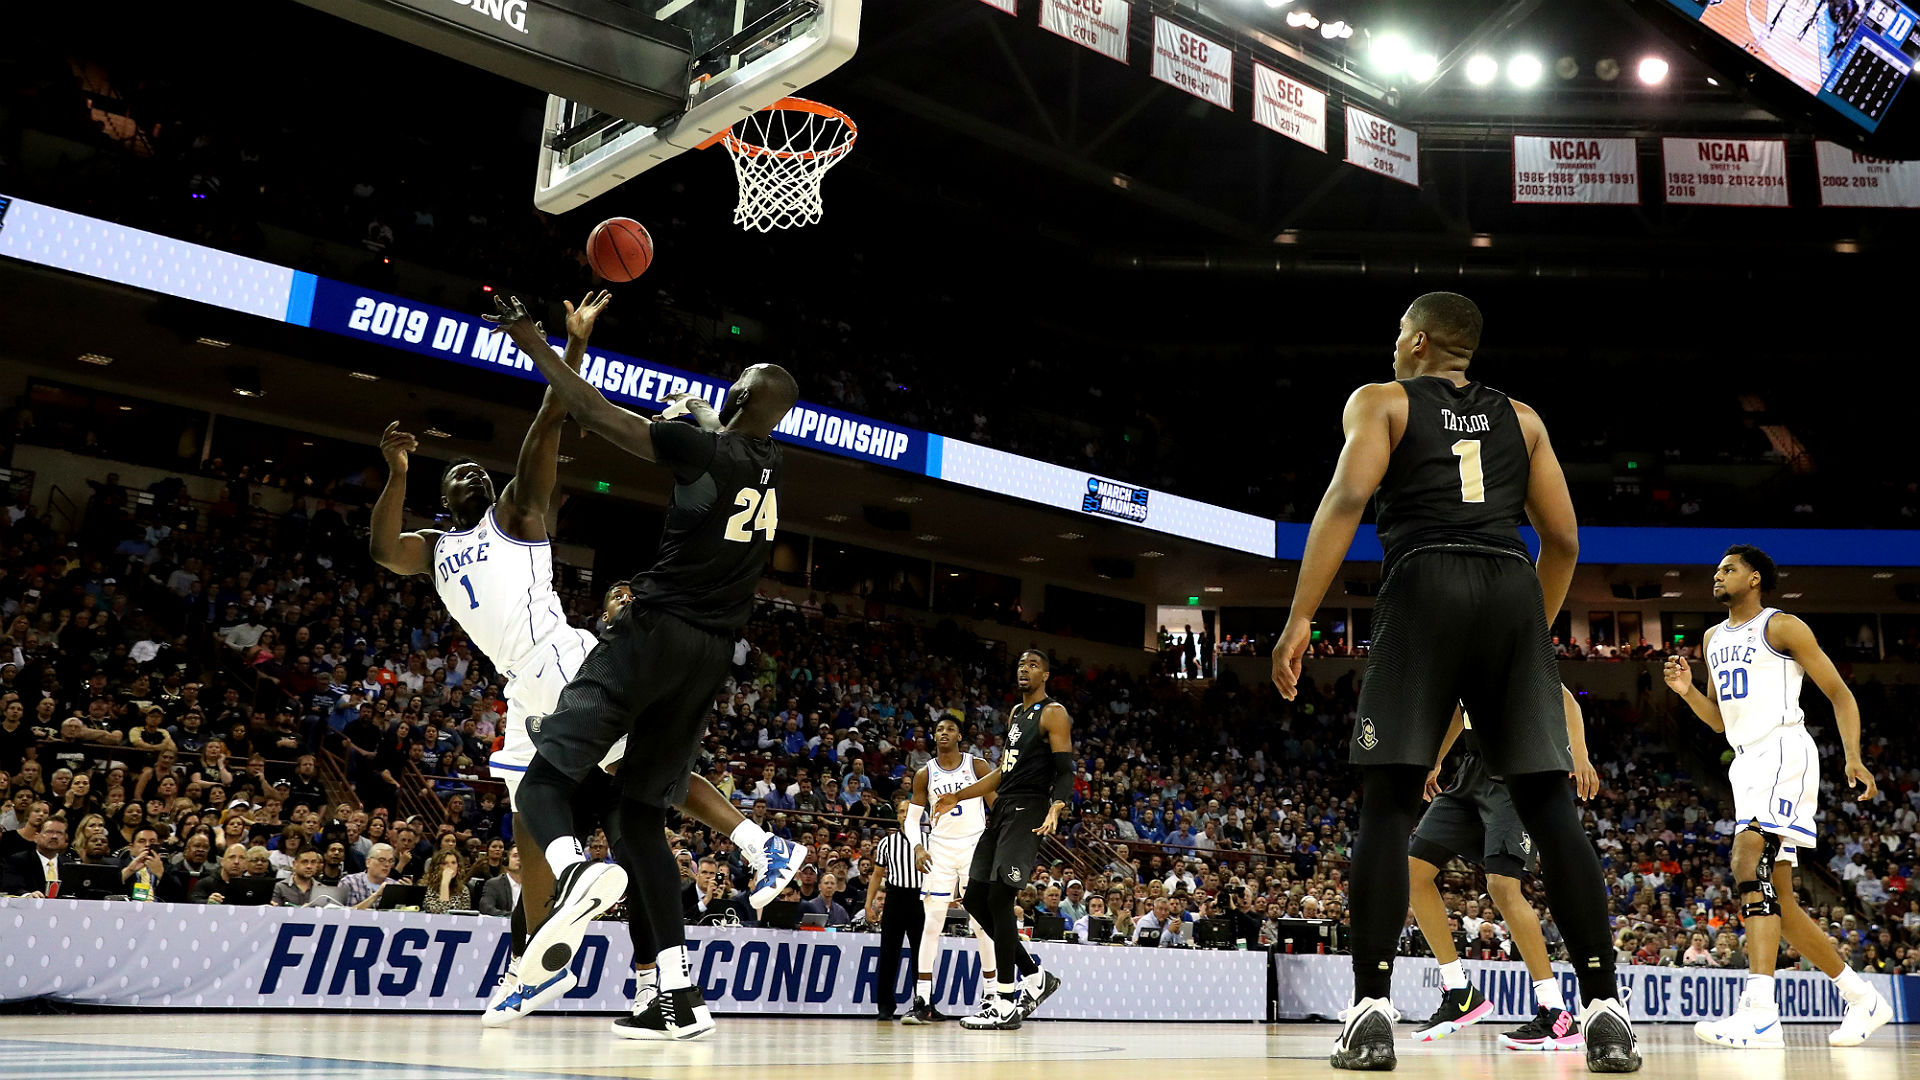 March Madness 2019 3 Takeaways From Duke S Win Over: March Madness 2019: Duke's Zion Williamson Discusses Win